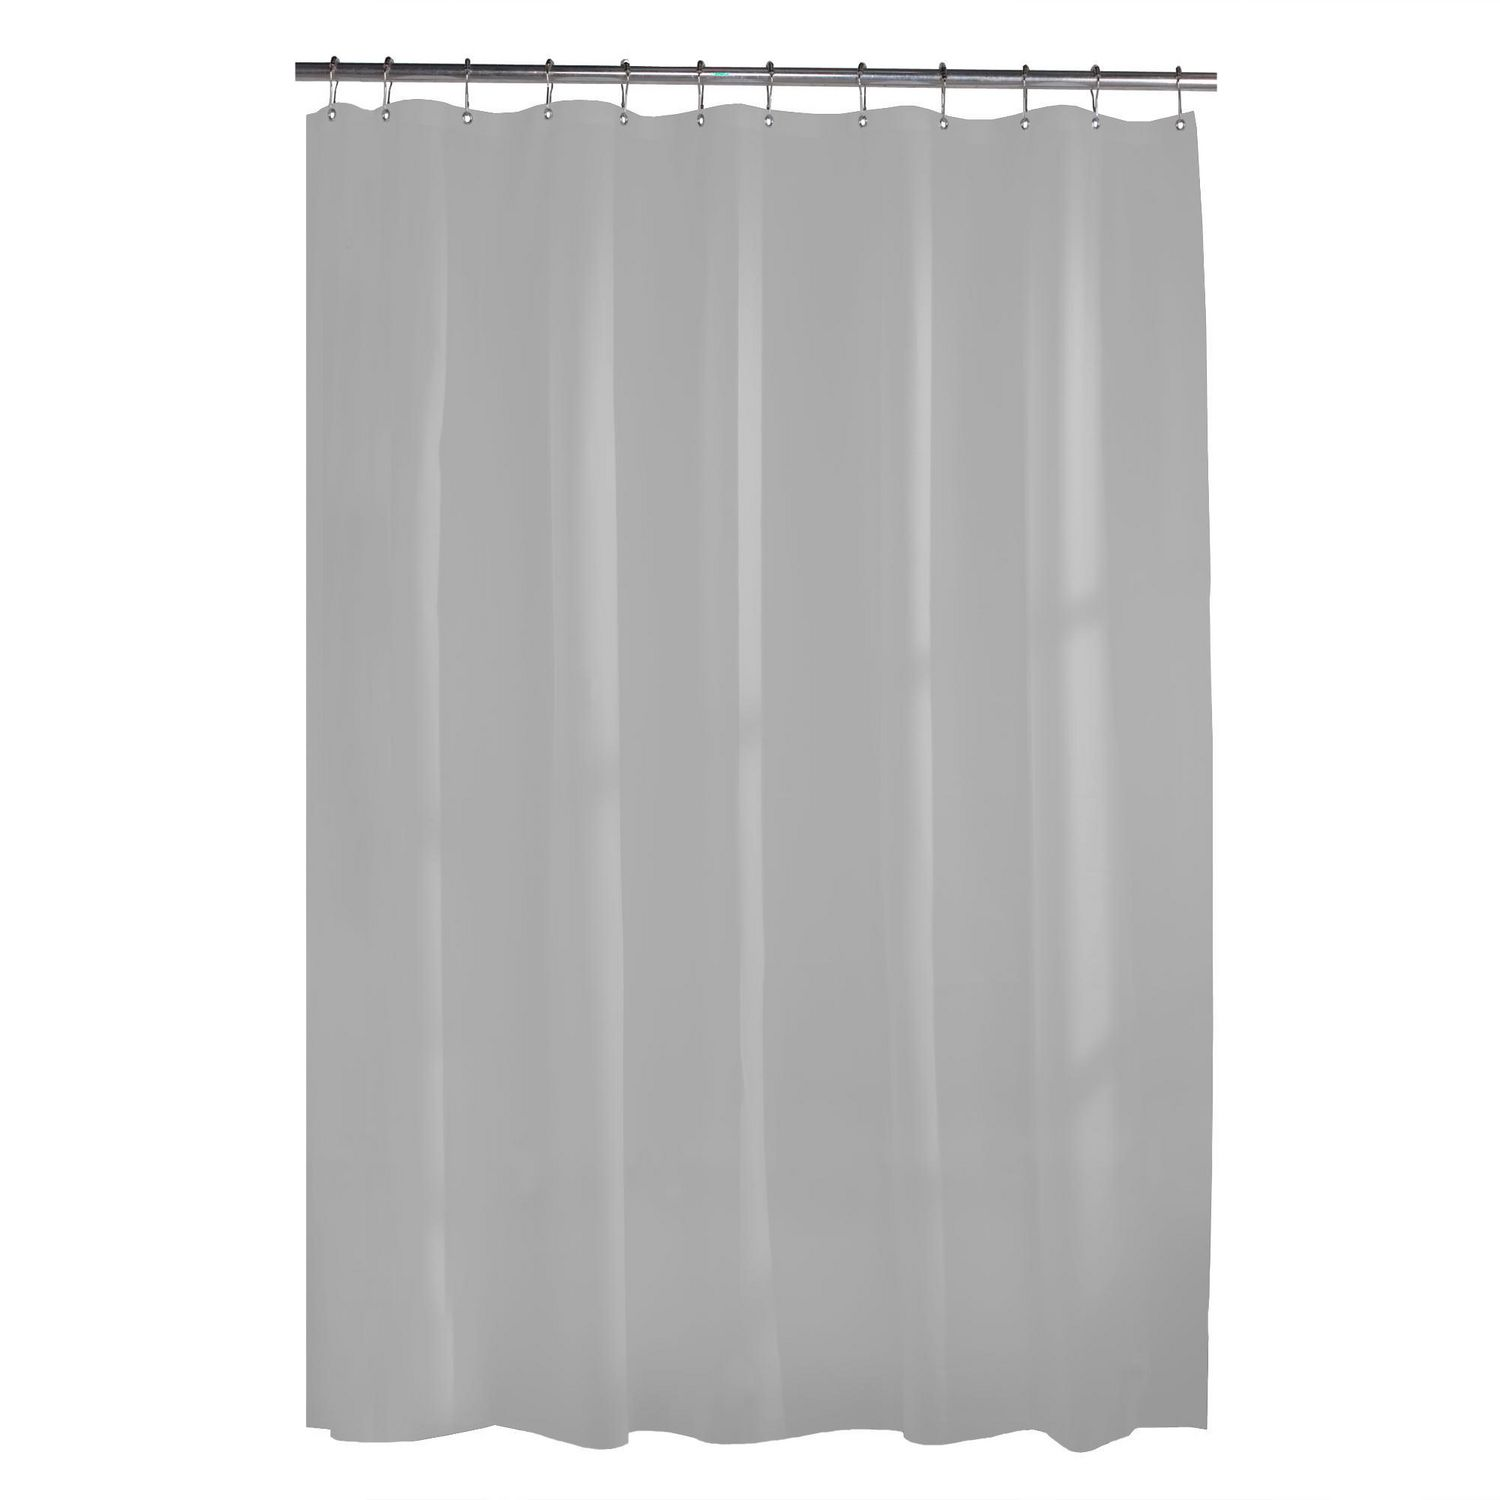 carnation hookless for stalls x inchower images curtainstalls rod only curtains stall stallshower magnificent size full home shower inspirations fashions curtain of fortall